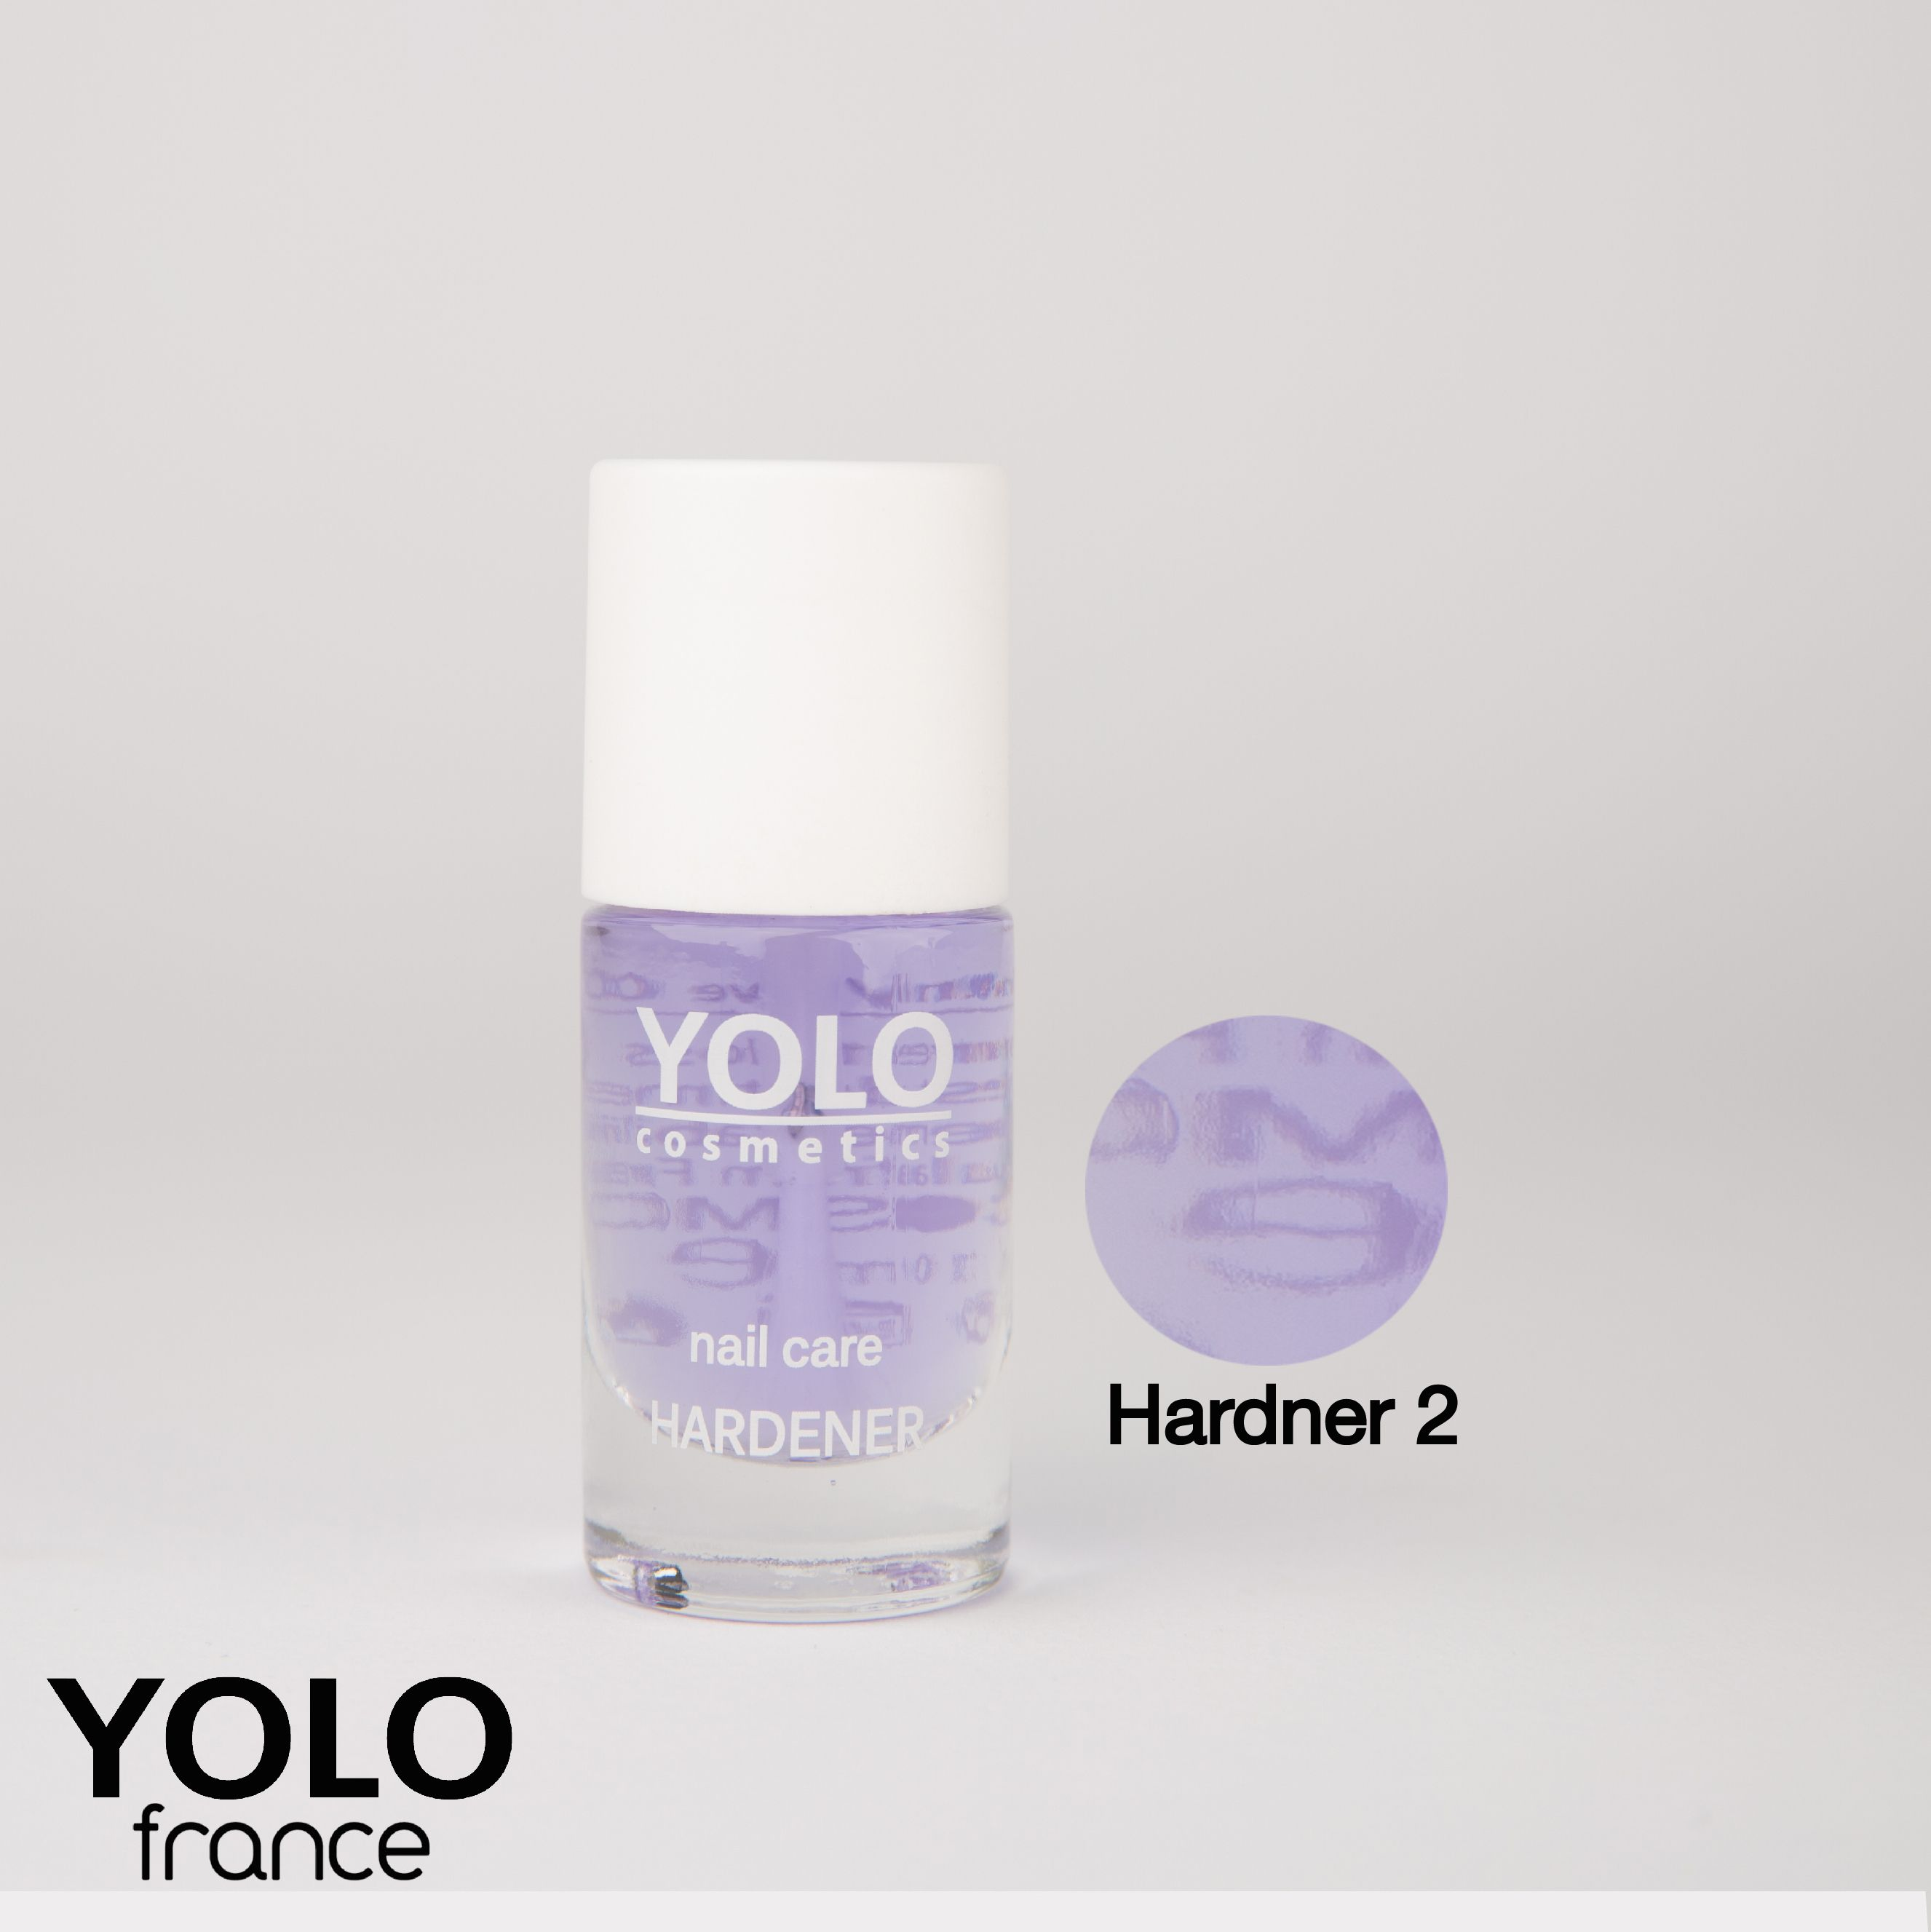 YOLO Hardener 2 How to apply This product carries out a